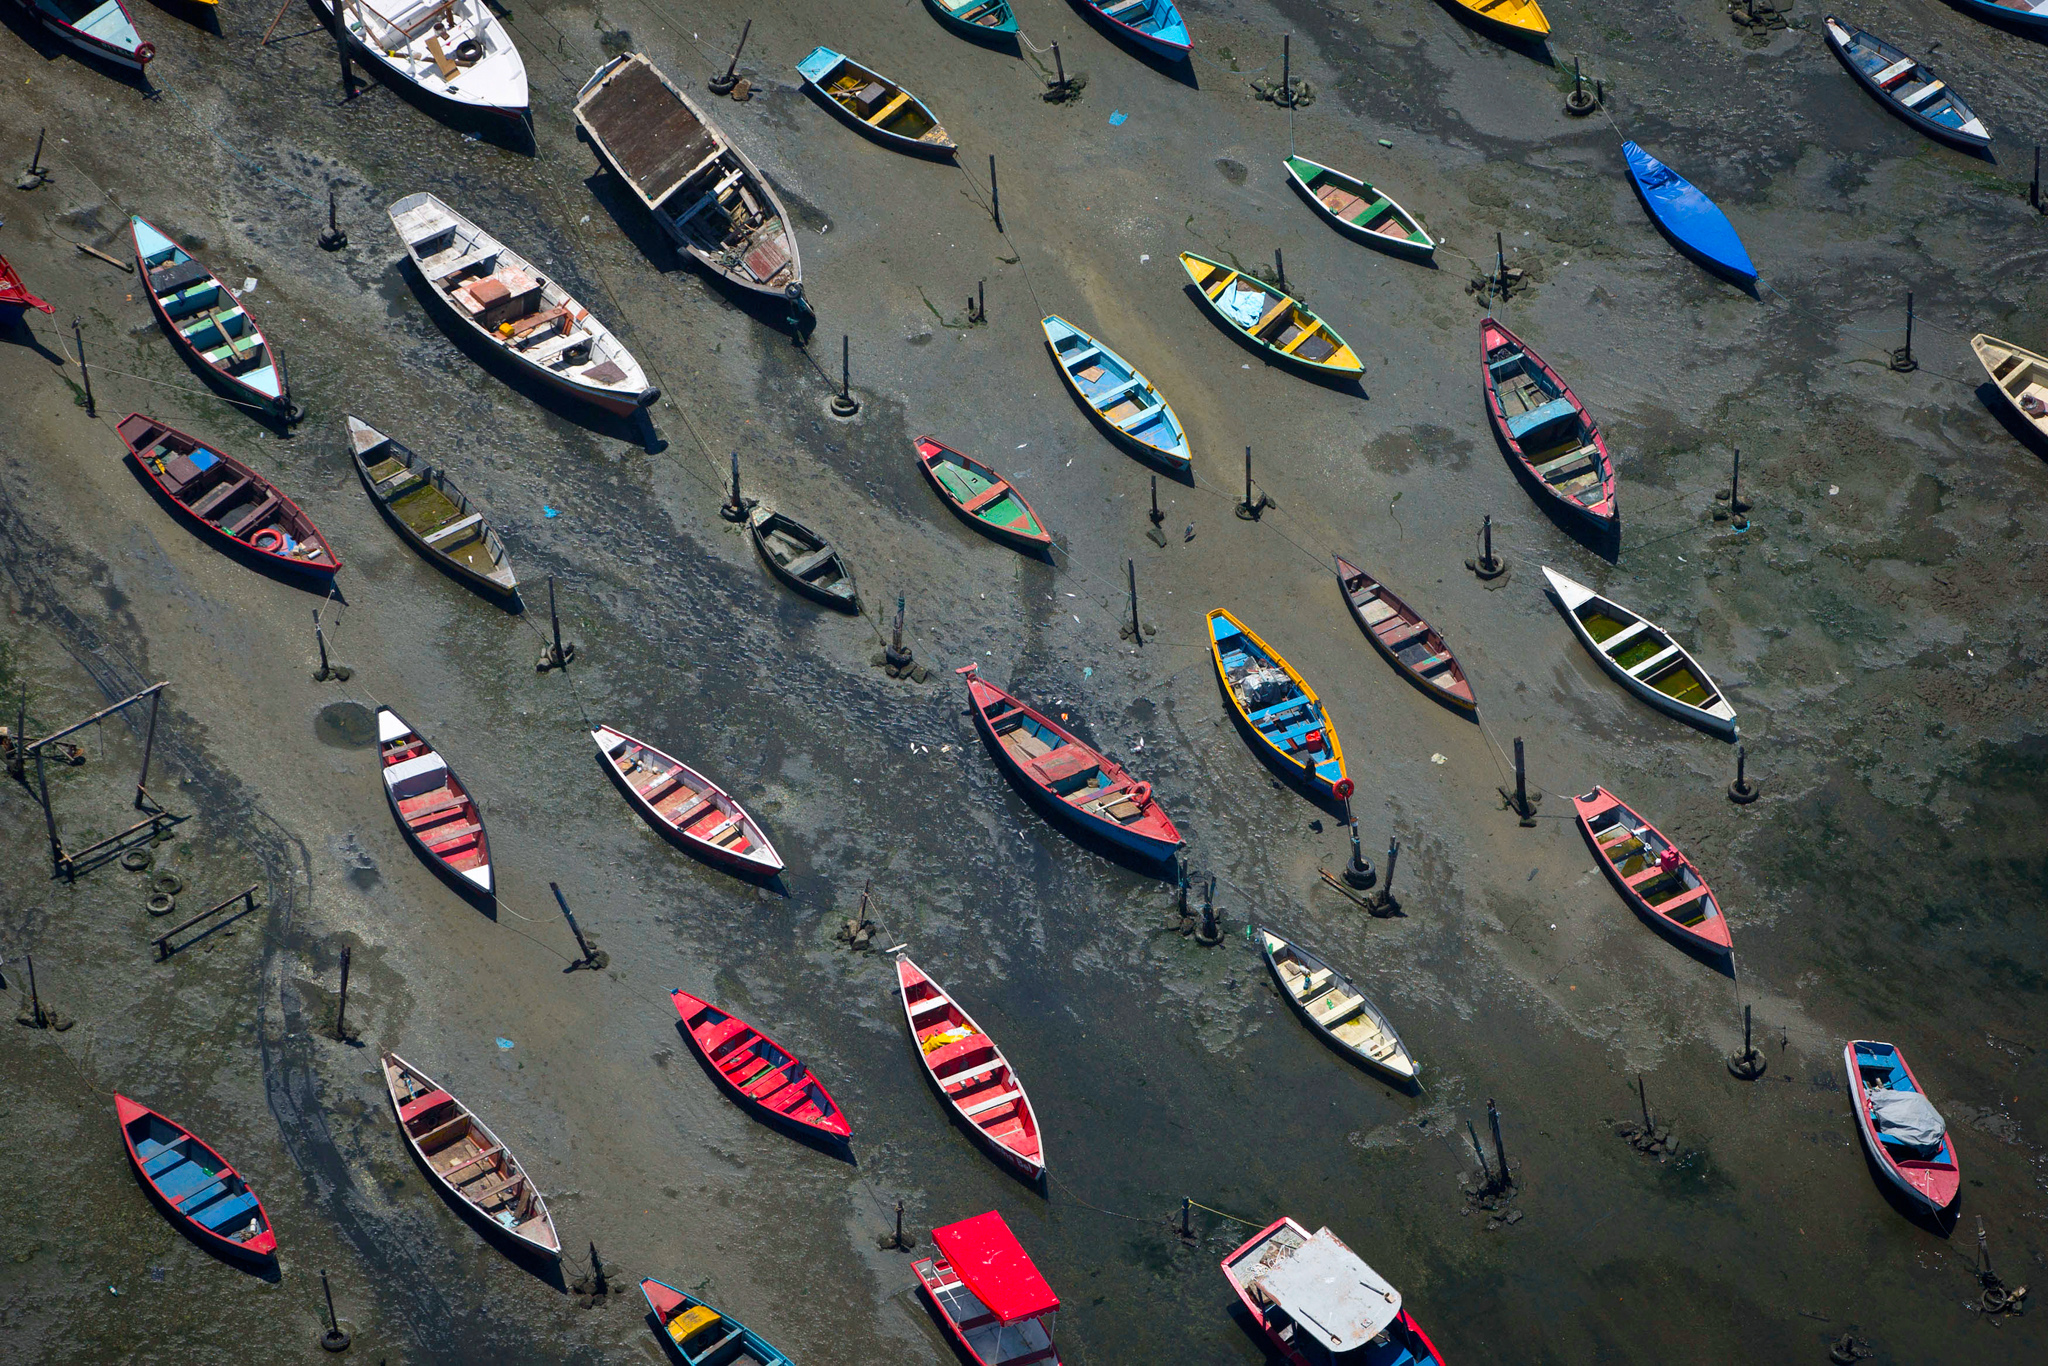 Small boats sit on the shore of Guanabara Bay in the suburb of Sao Goncalo, across the bay from Rio de Janeiro, Brazil, Tuesday, Nov. 19, 2013. The bay was home to a thriving artisanal fishing industry and popular palm-lined beaches as recently as the late-1970s, but has become a watery dump for waste from shipyards and two commercial ports. Rio de Janeiro will host the 2016 Olympic Games.